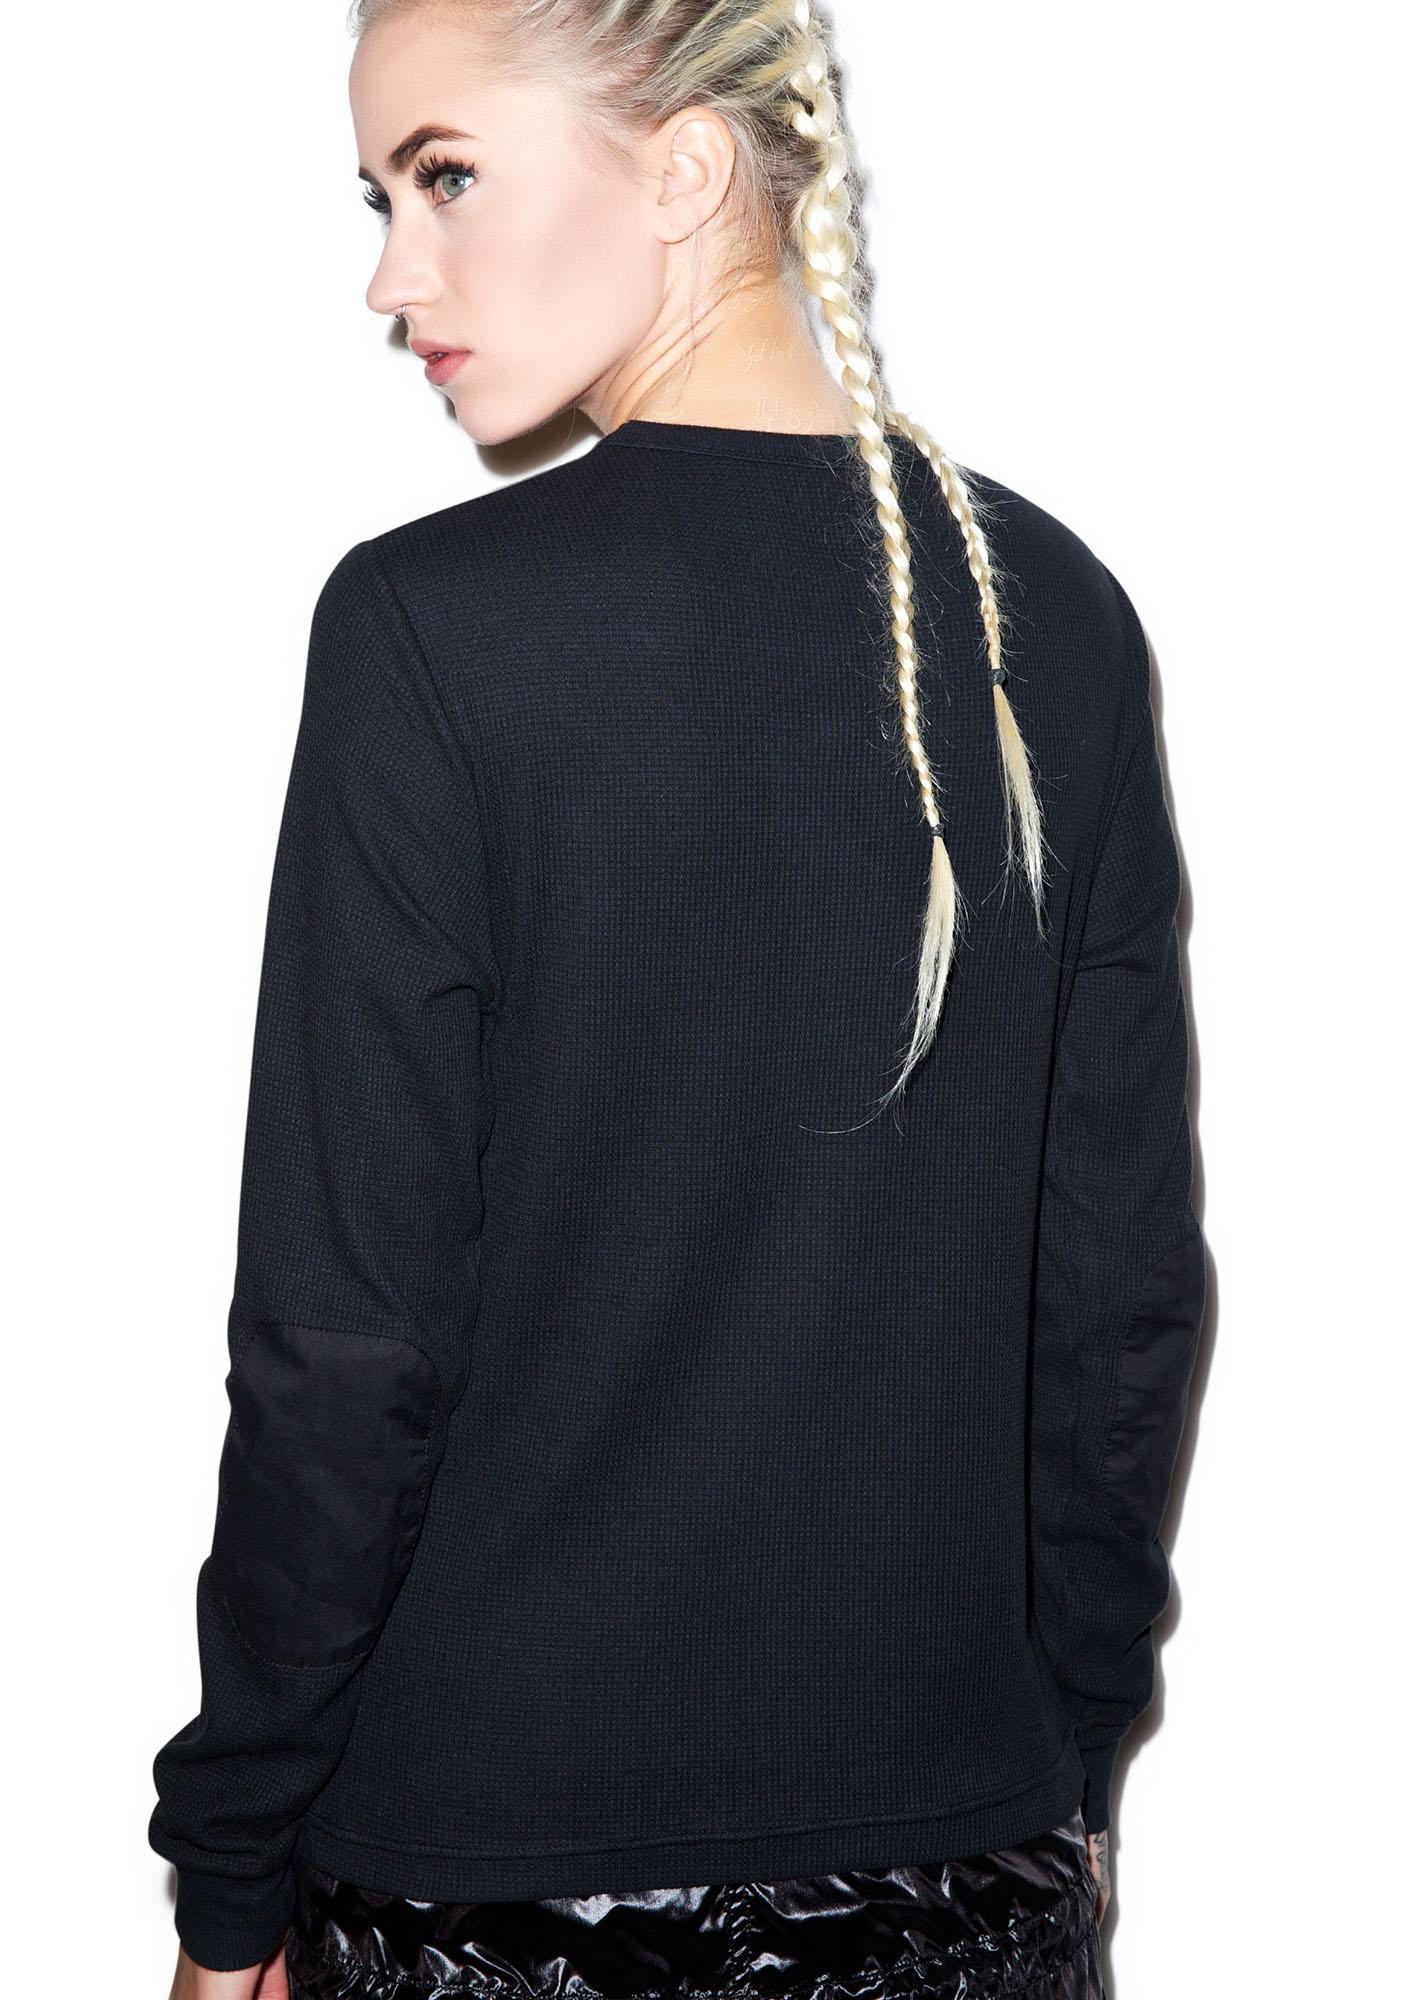 Black Scale Lawless Sweatshirt